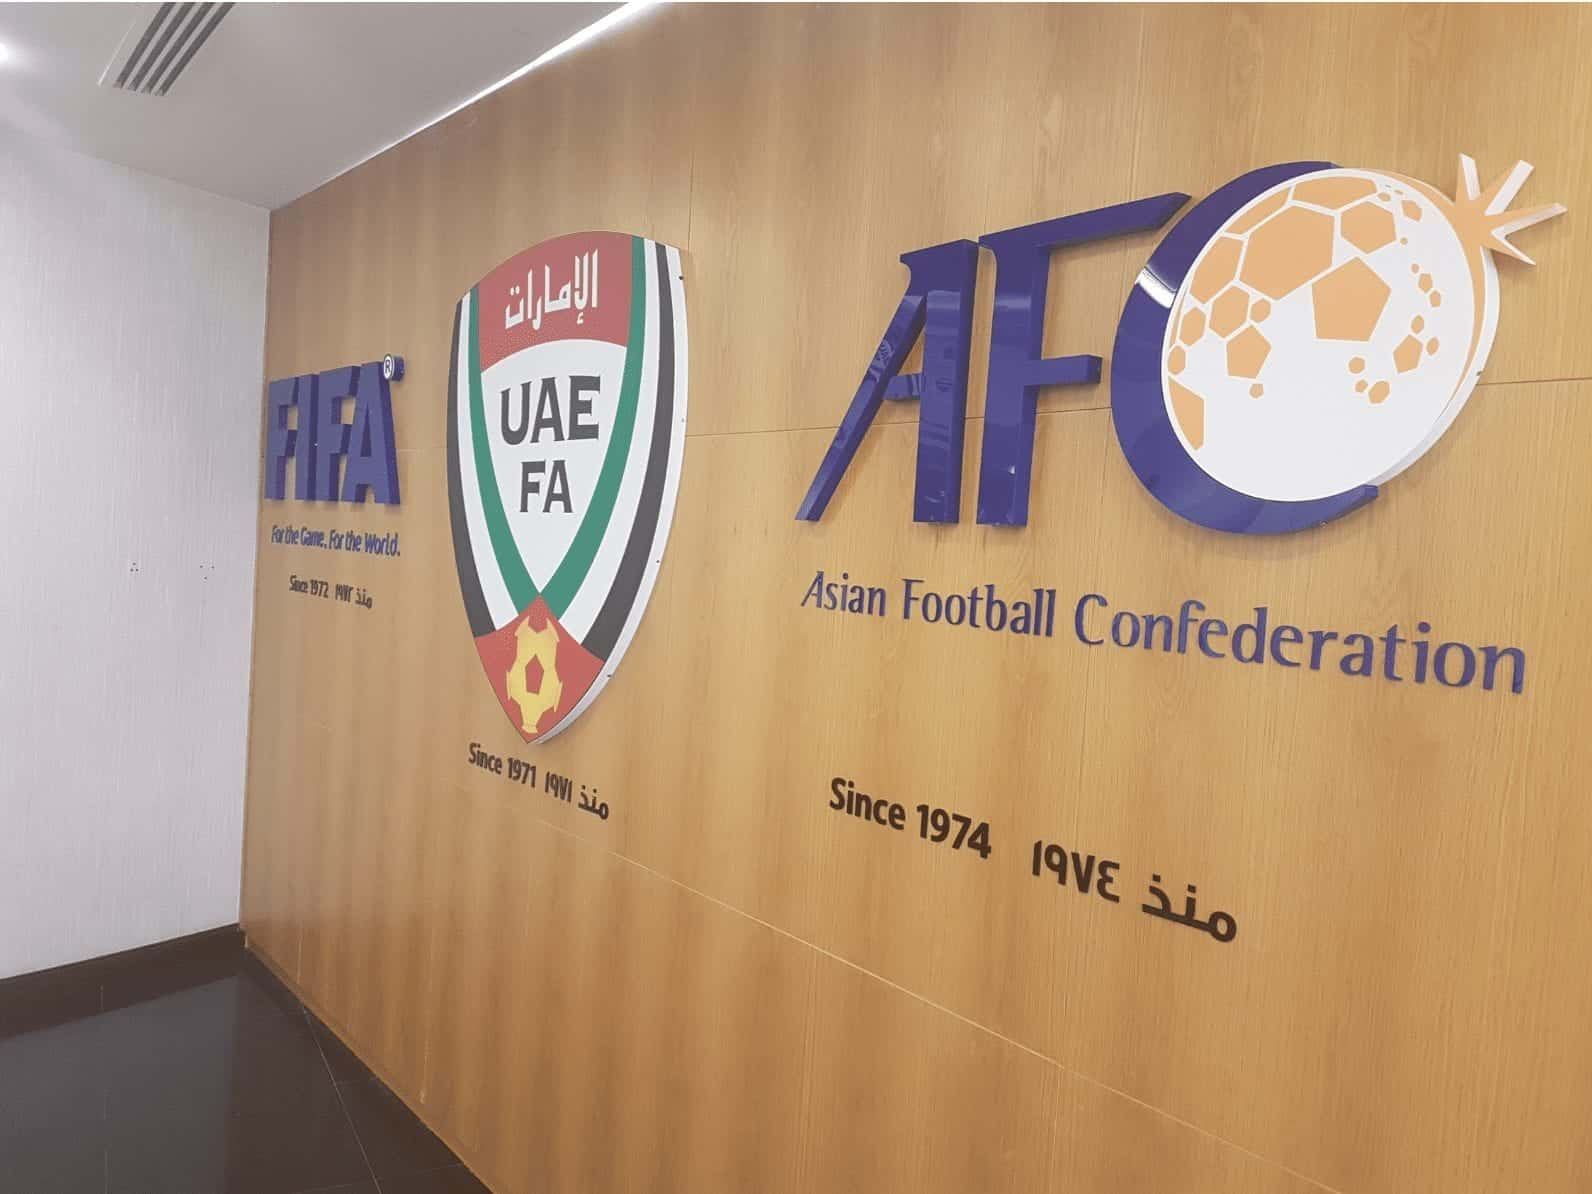 PFSA Level 2 with our partners the UAE FA